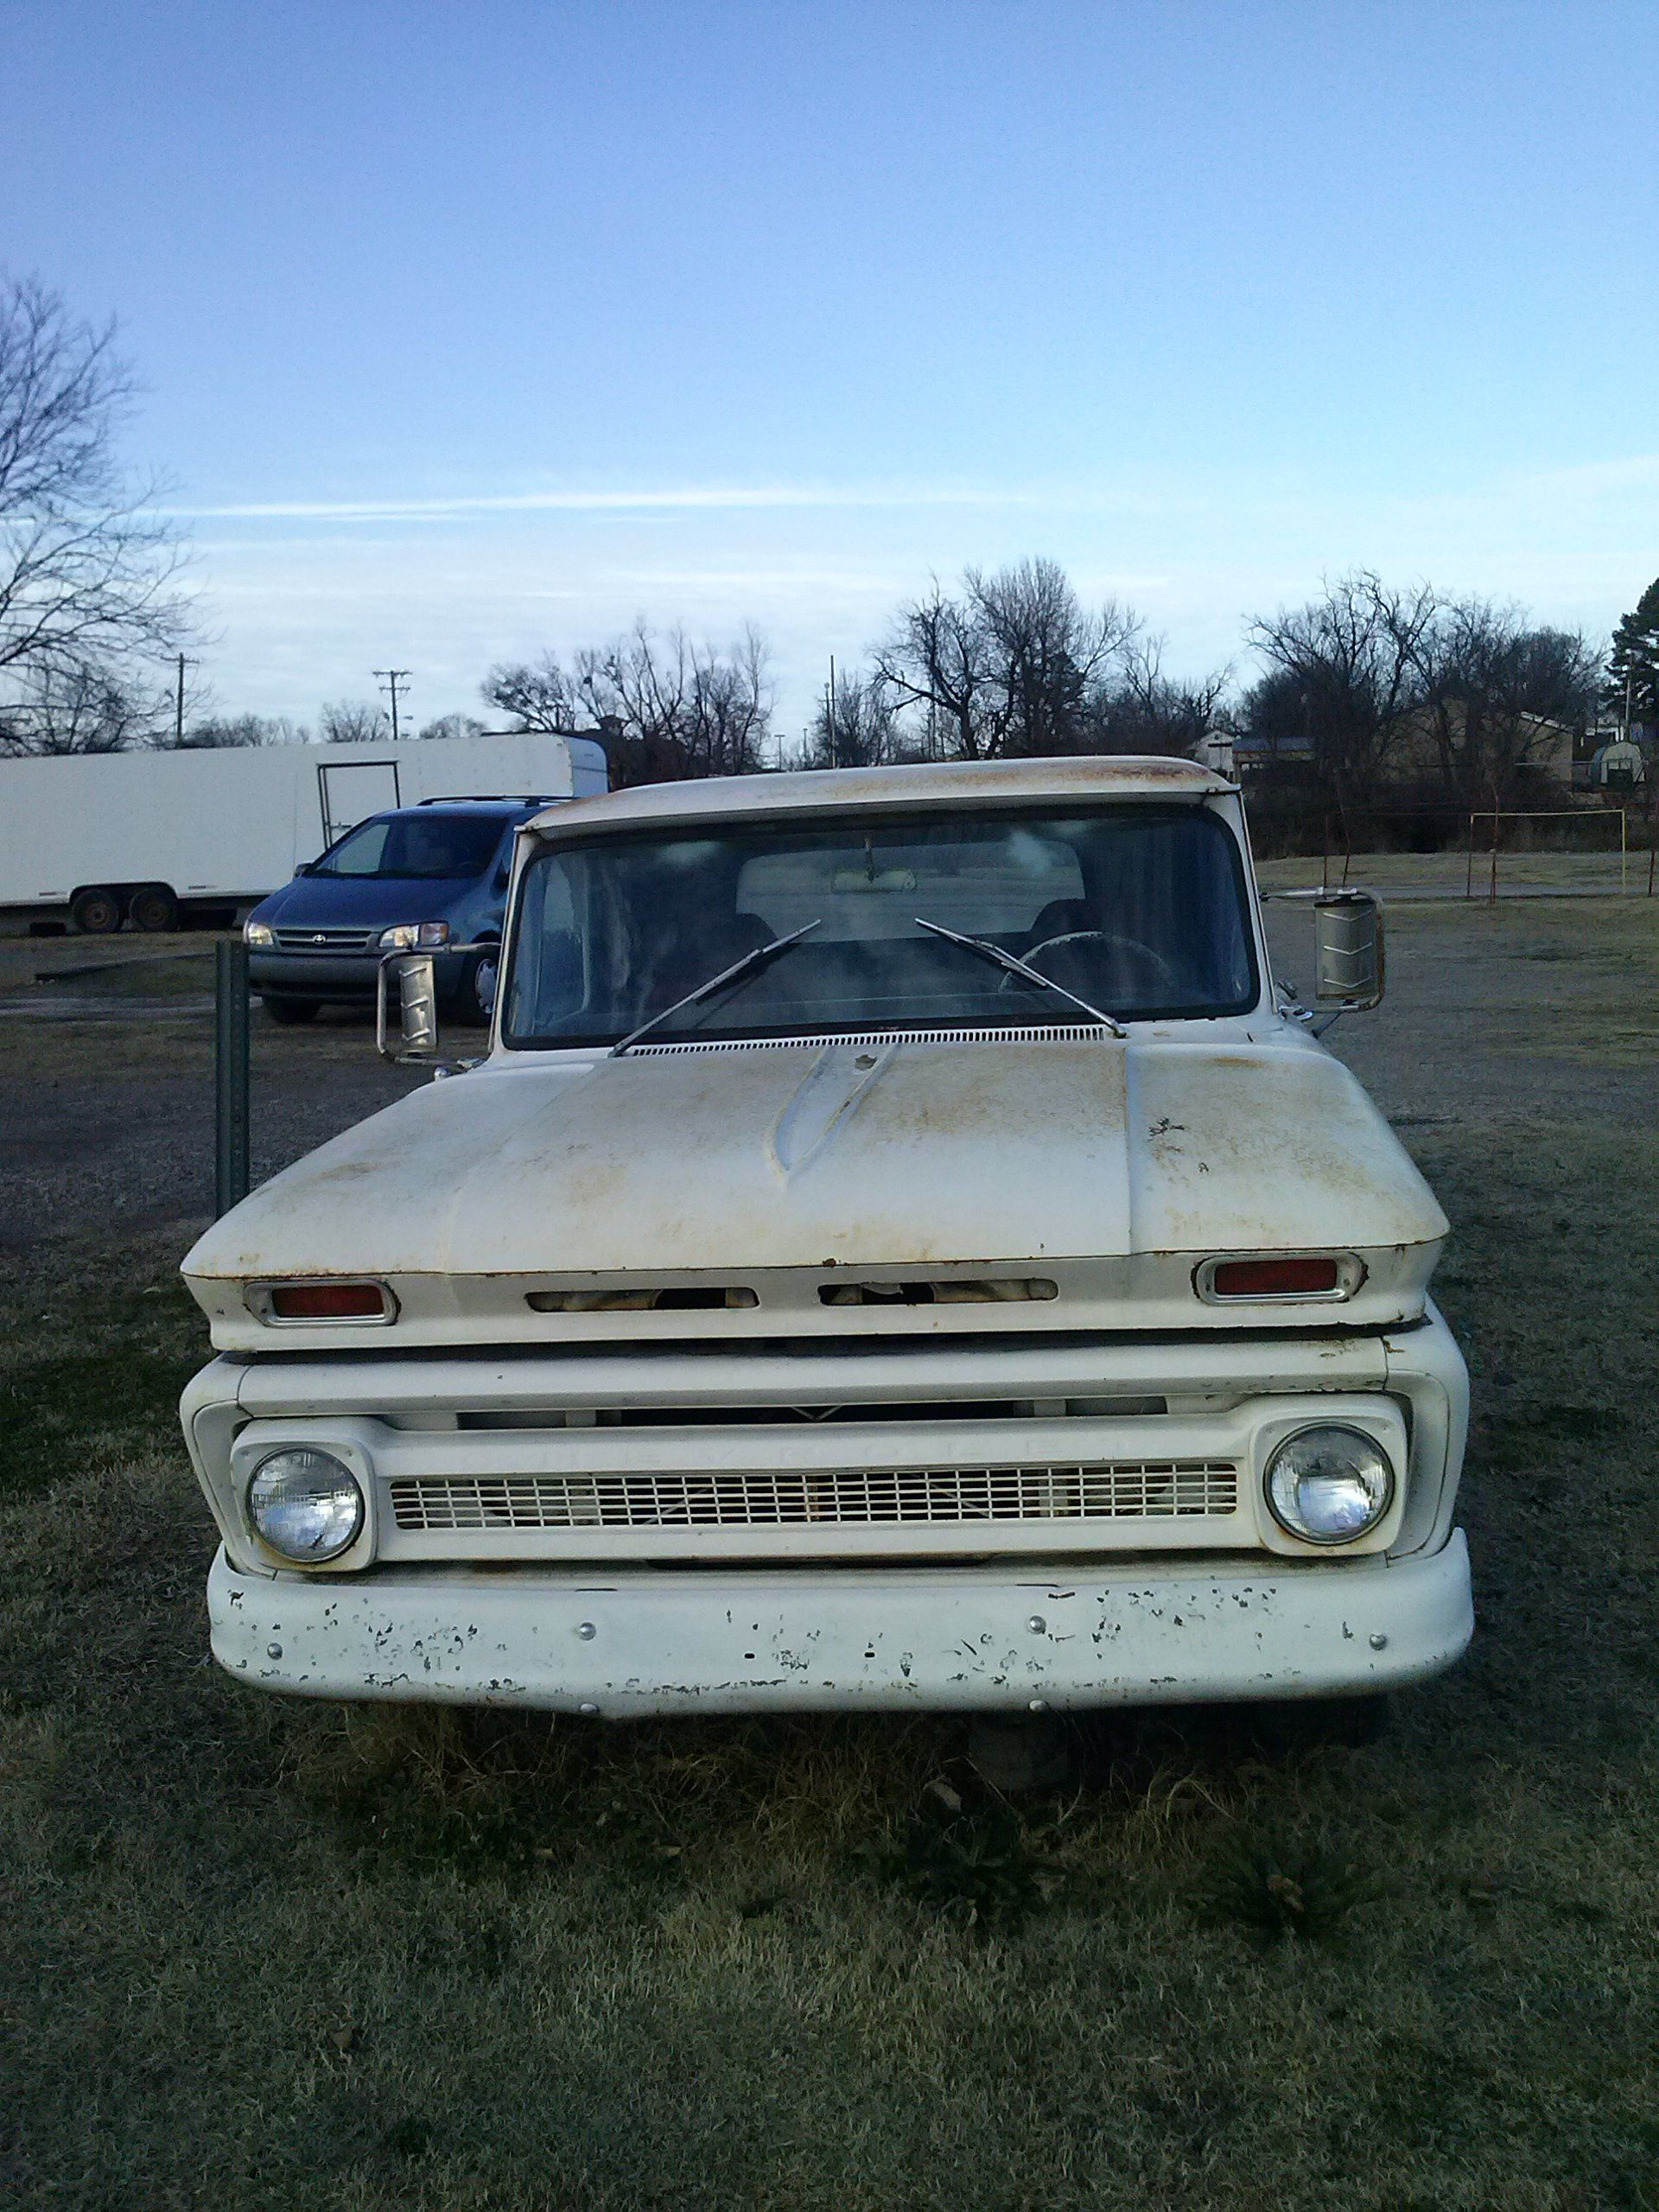 Chevy pickup needing a good home For sale in Fort Smith Arkansas